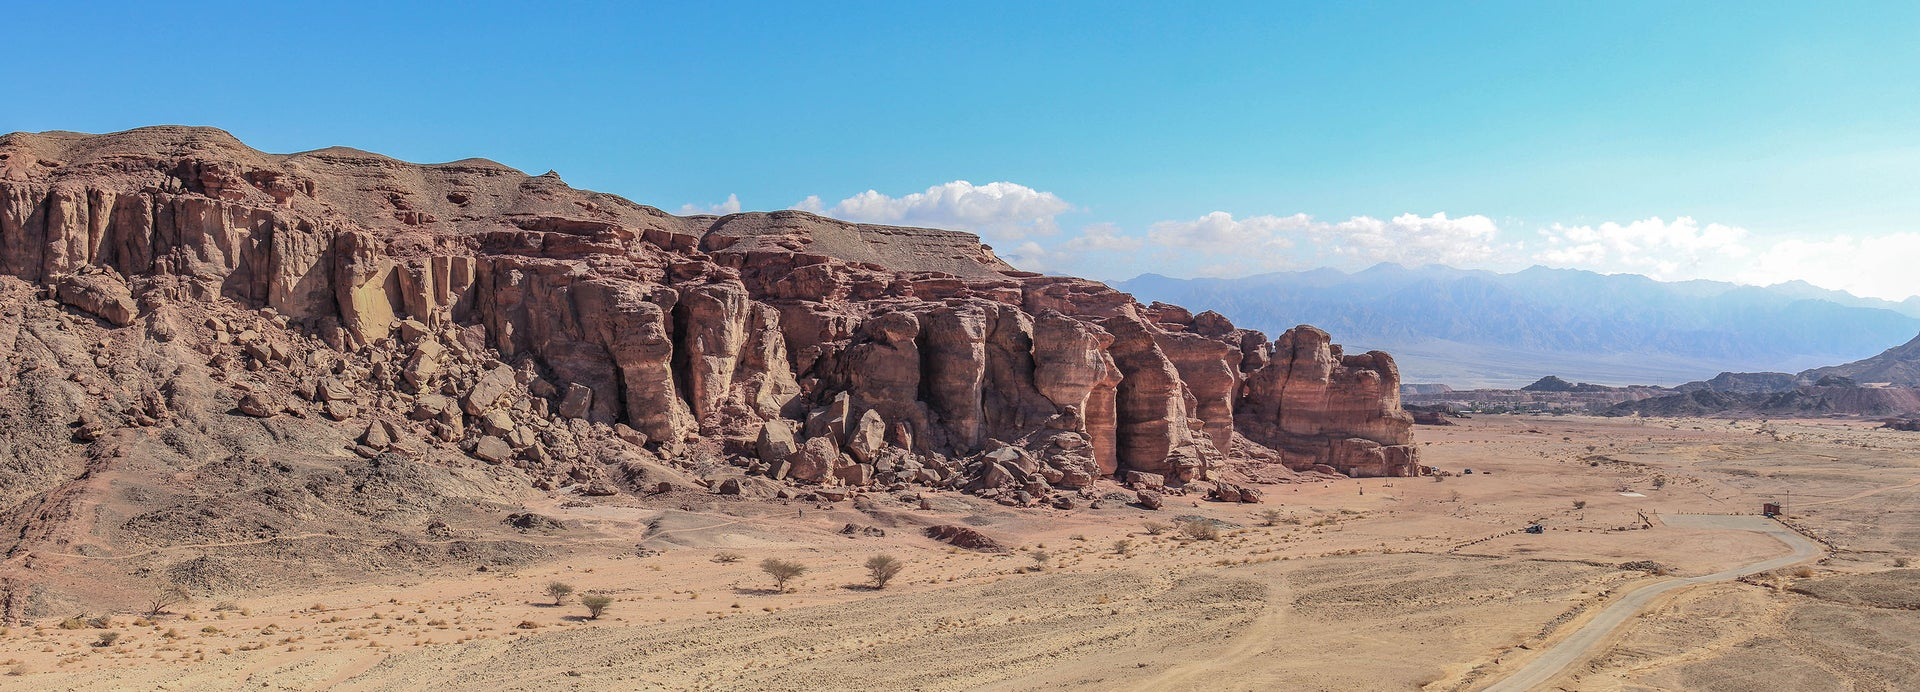 A view of the ancient copper mines in the Timna Valley, southern Israel